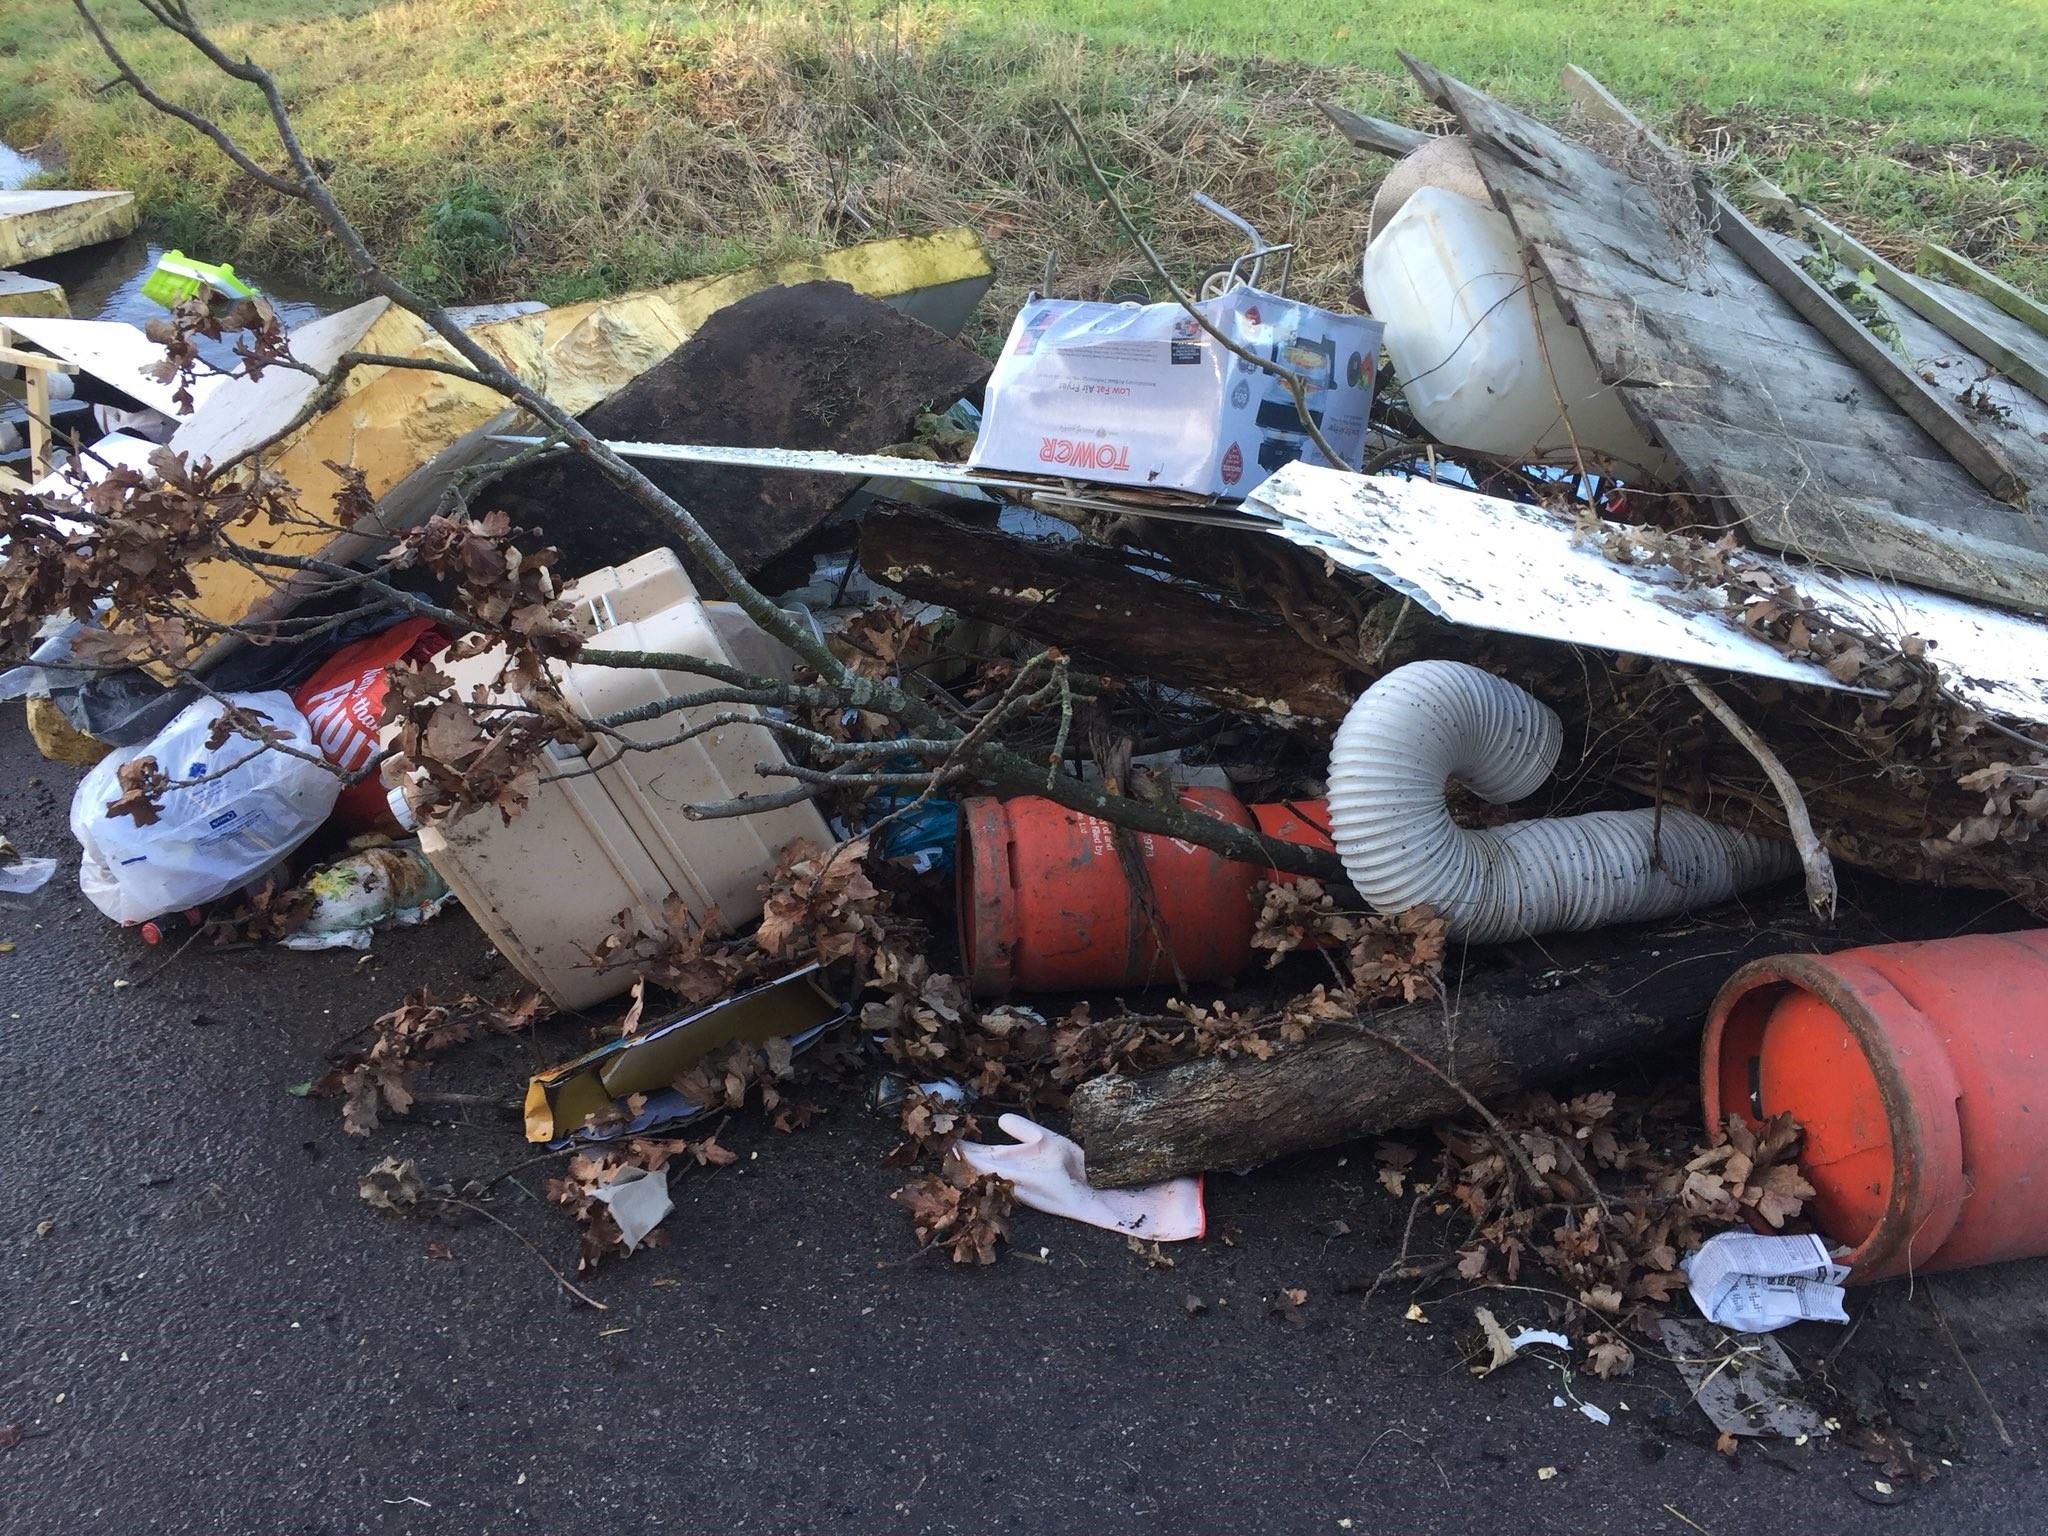 This rubbish was dumped in a field in Bartons Green